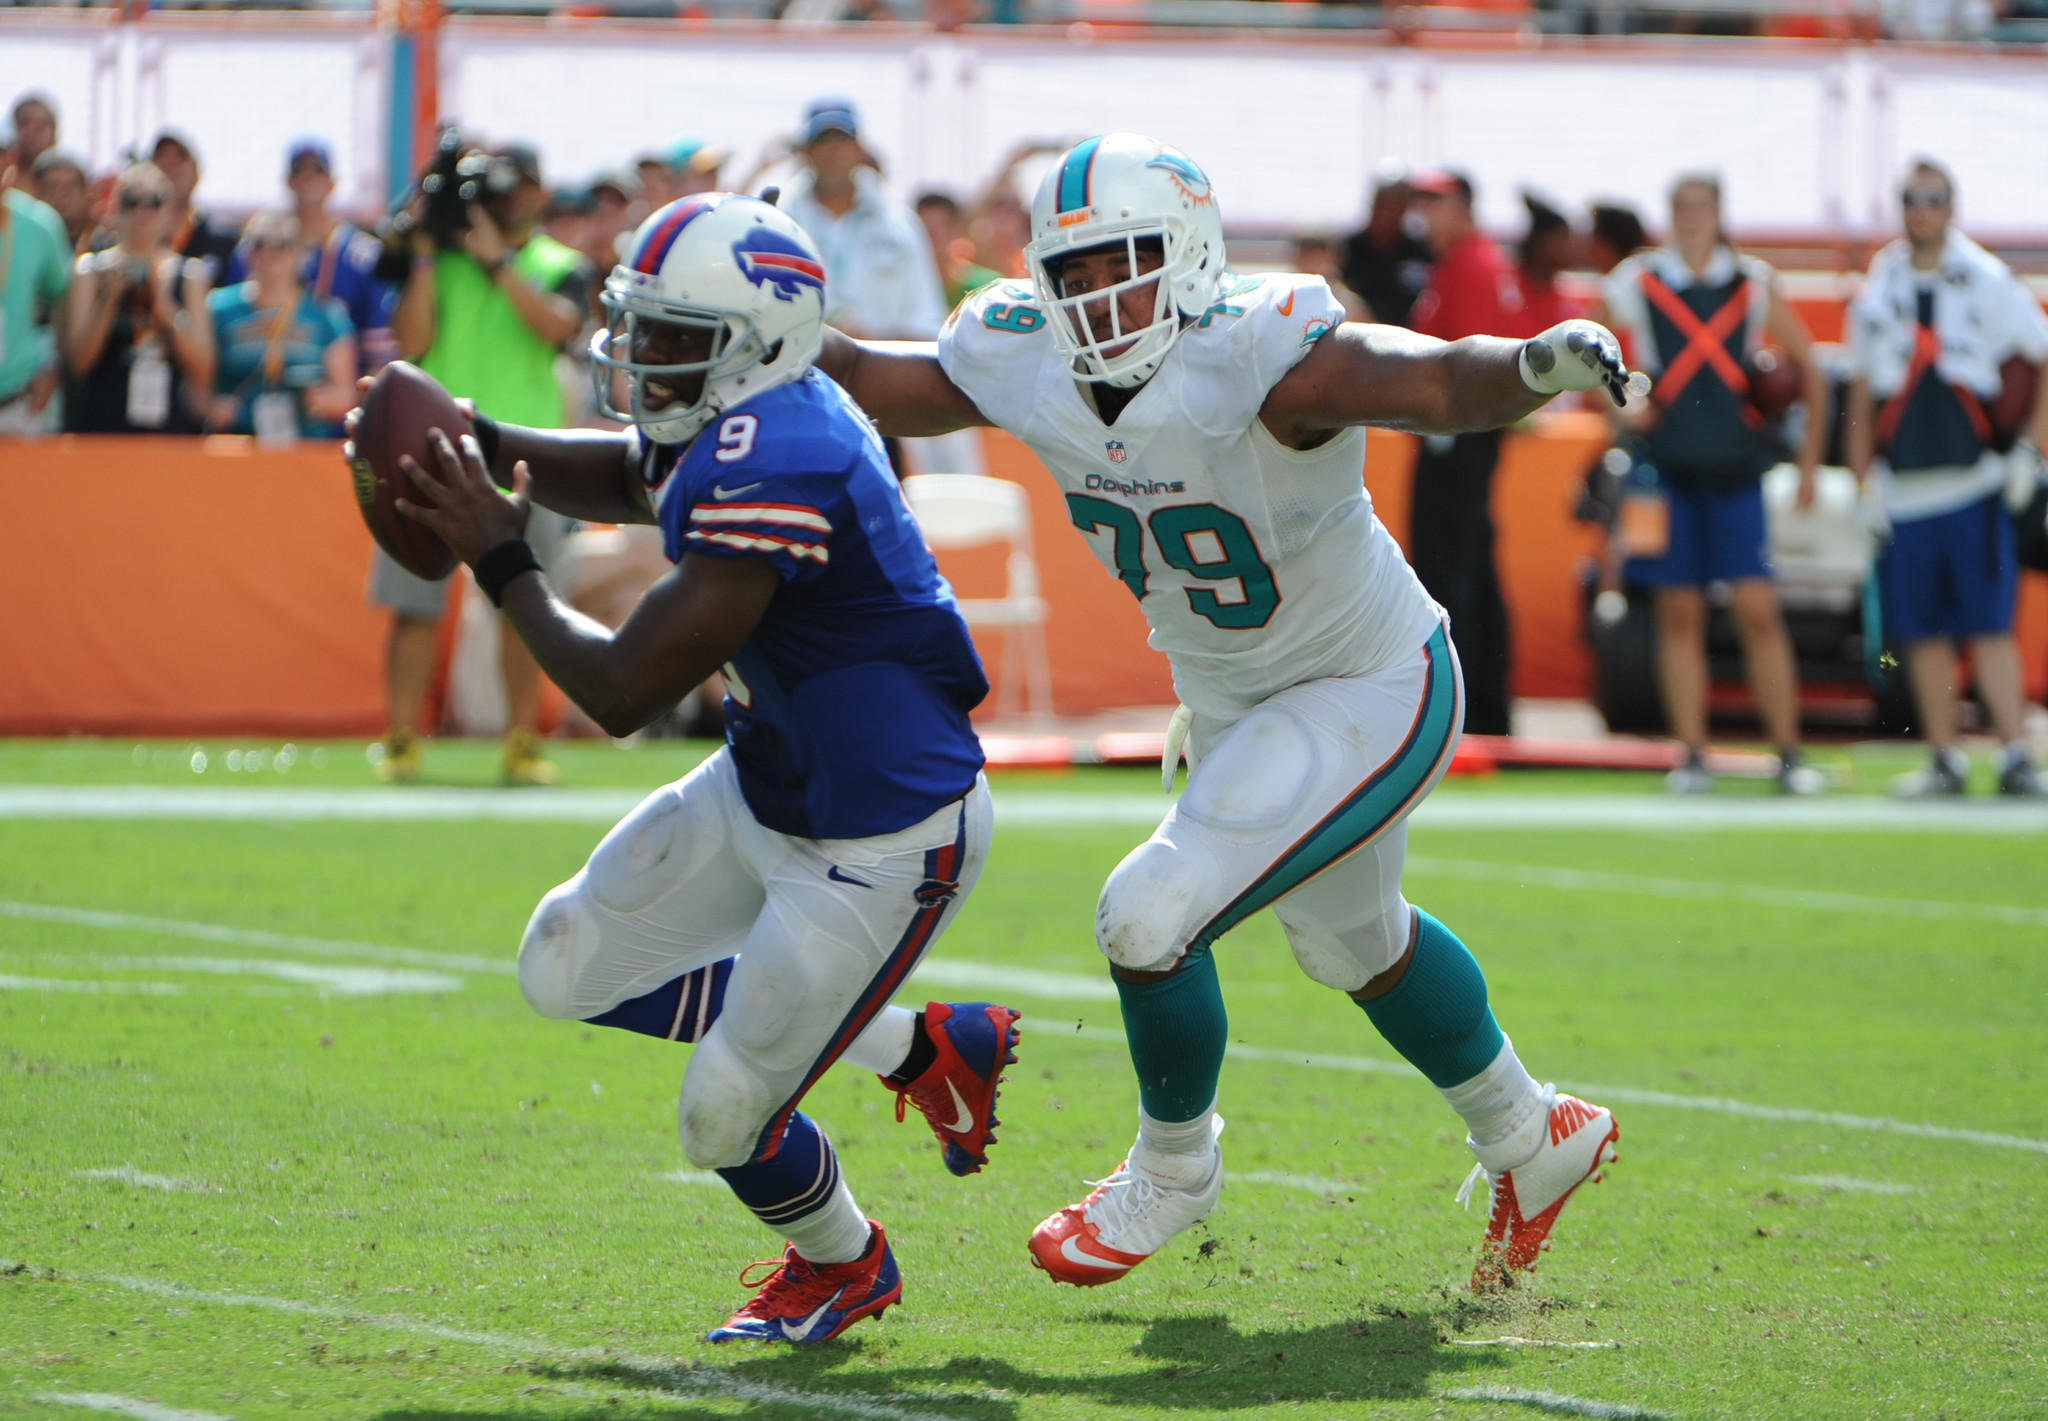 Miami Dolphins Derrick Shelby stops Buffalo Bills quarterback Thad Lewis in the fourth quarter